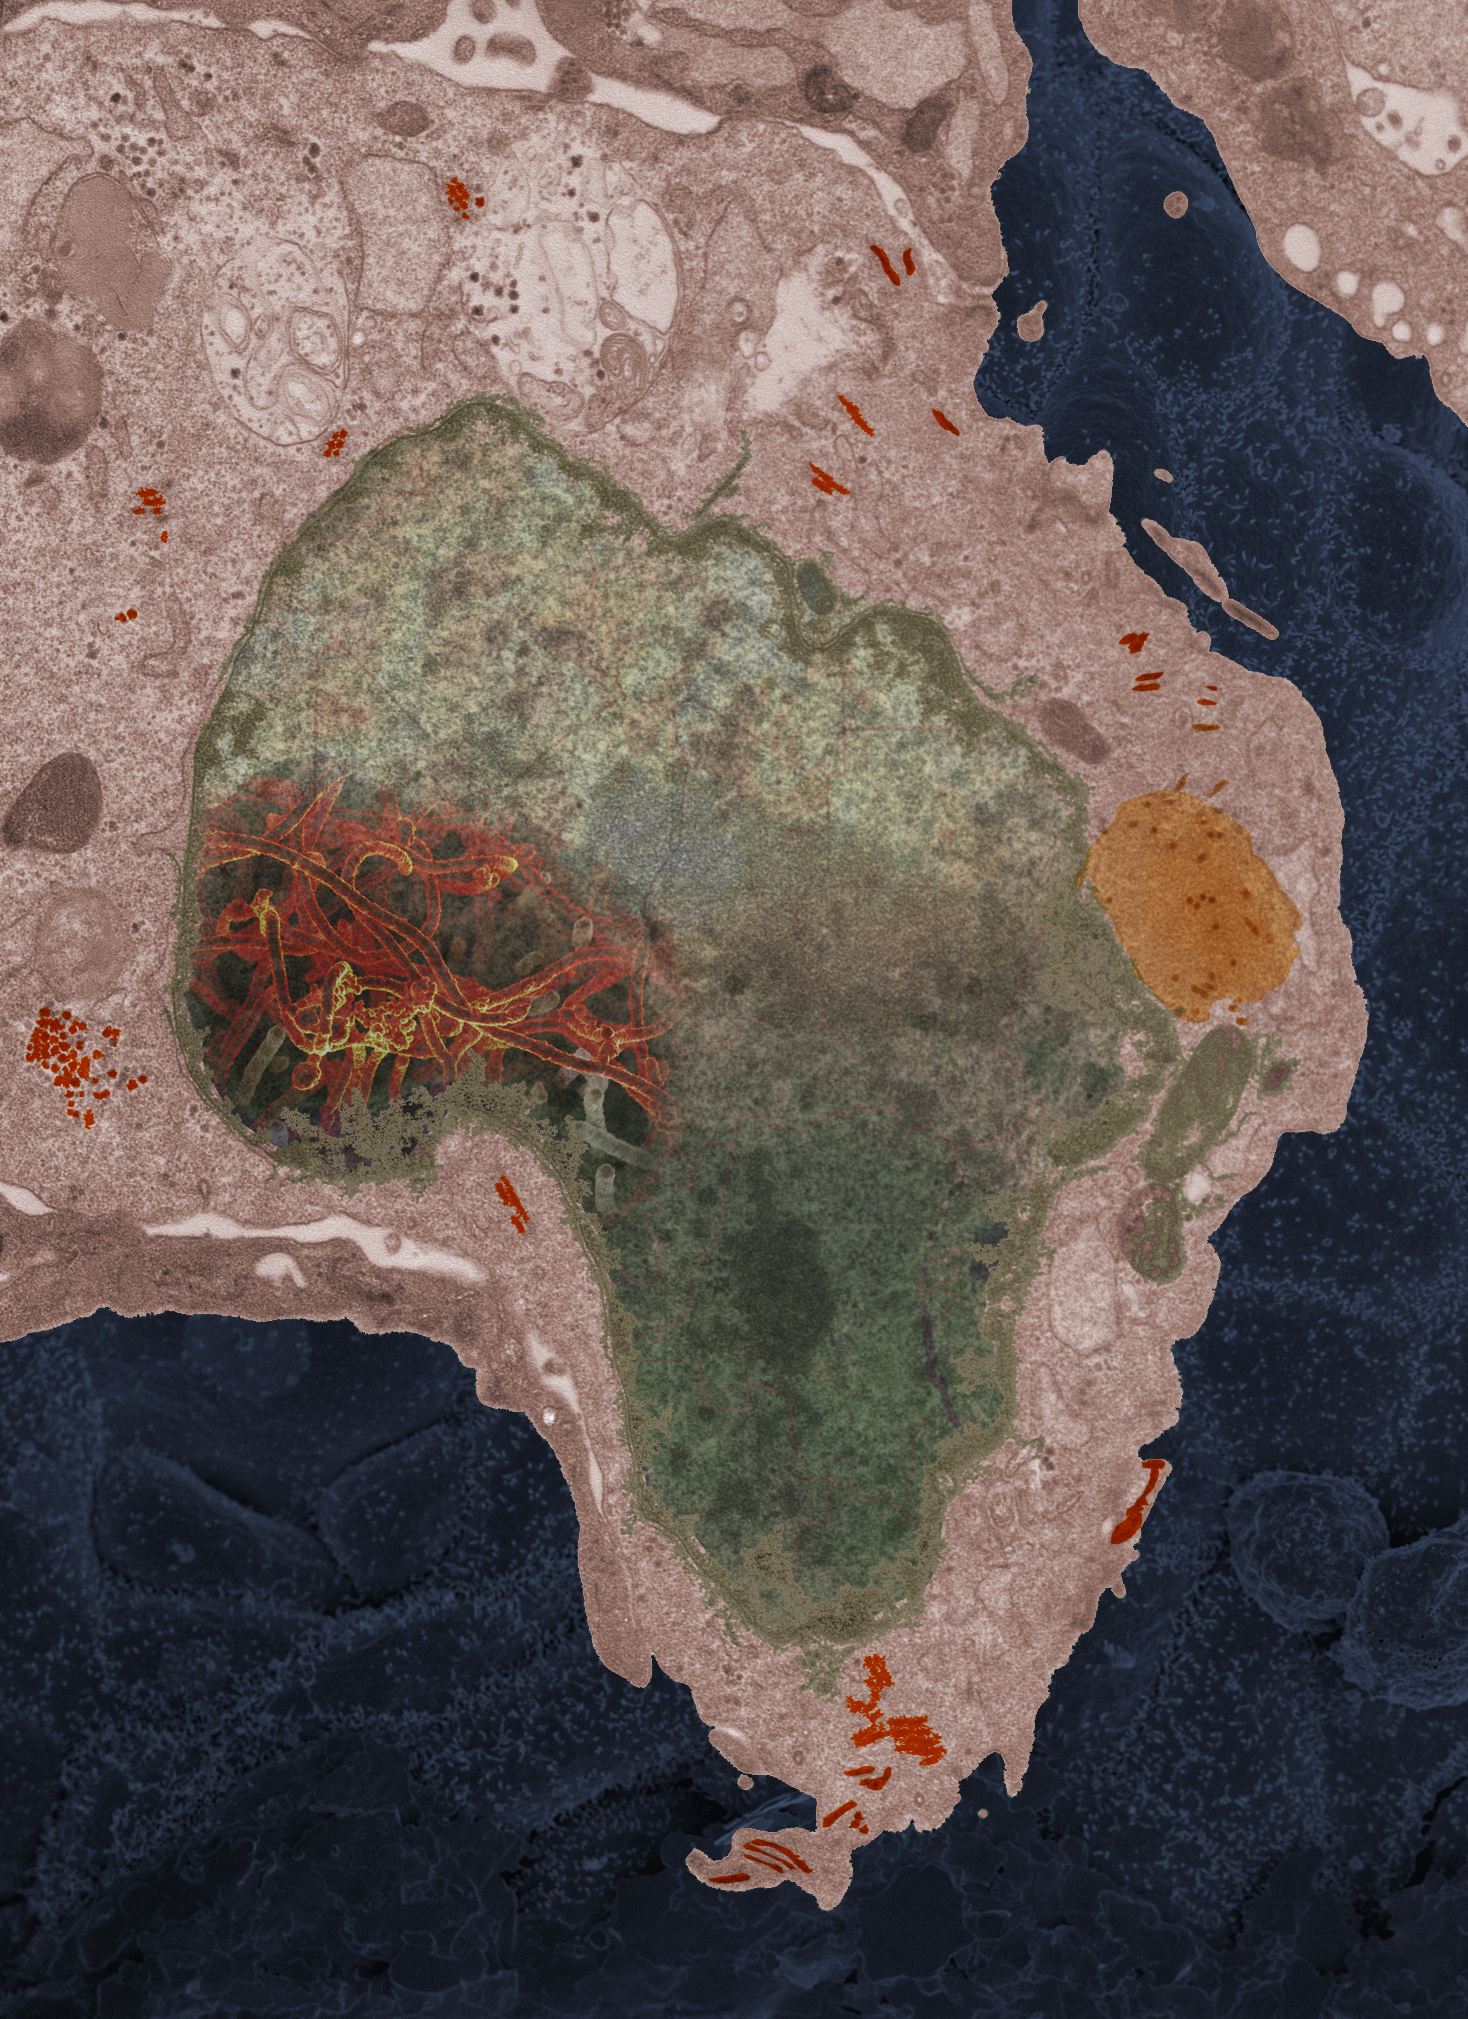 In 2014, Fischer received a sample of Ebola from a 2-year-old girl in Mali. The cell border and nucleus shape resemble the shape of Africa.